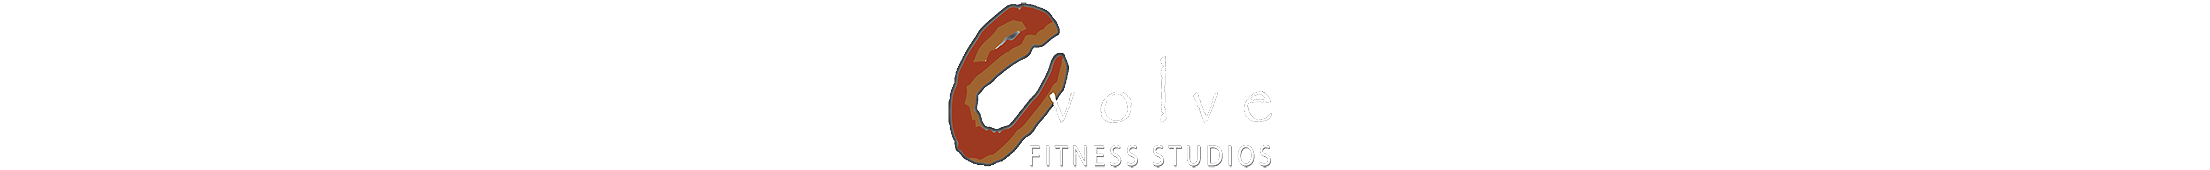 Evolve Fitness Studios | Personal Training Tel: 9939 1674 | Brookvale Northern Beaches | Sydney